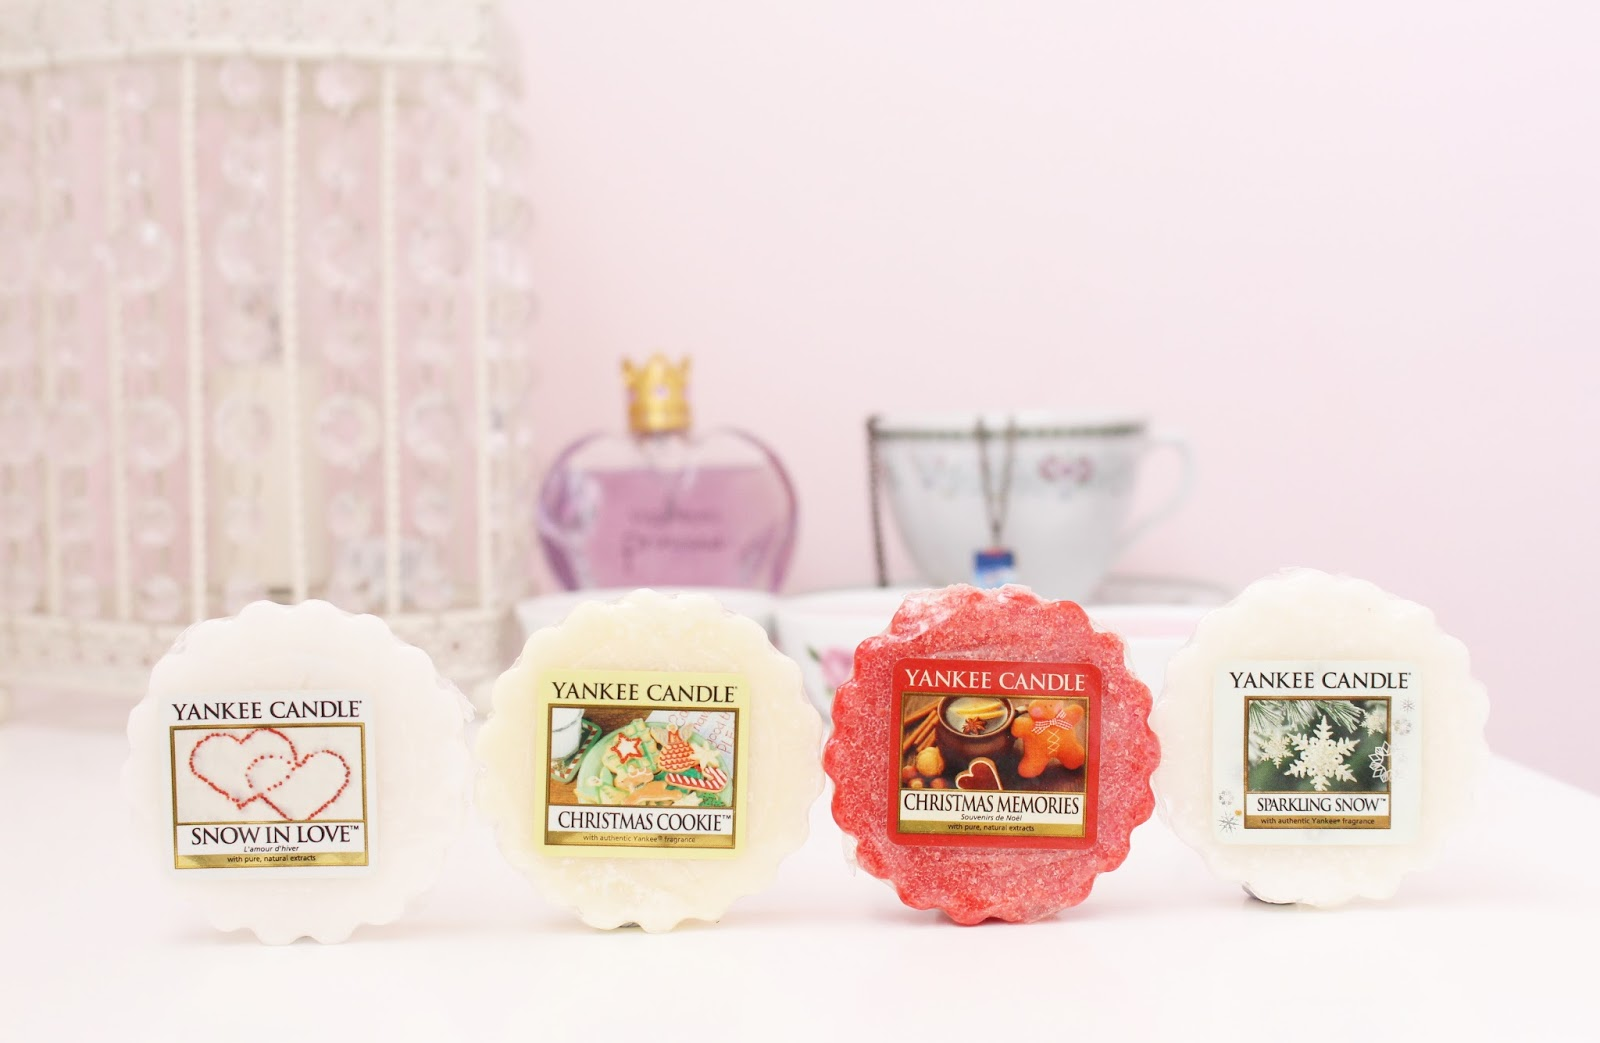 Yankee Candle Snow In Love, Christmas Cookie, Christmas Memories and Sparkling Snow Wax Tarts